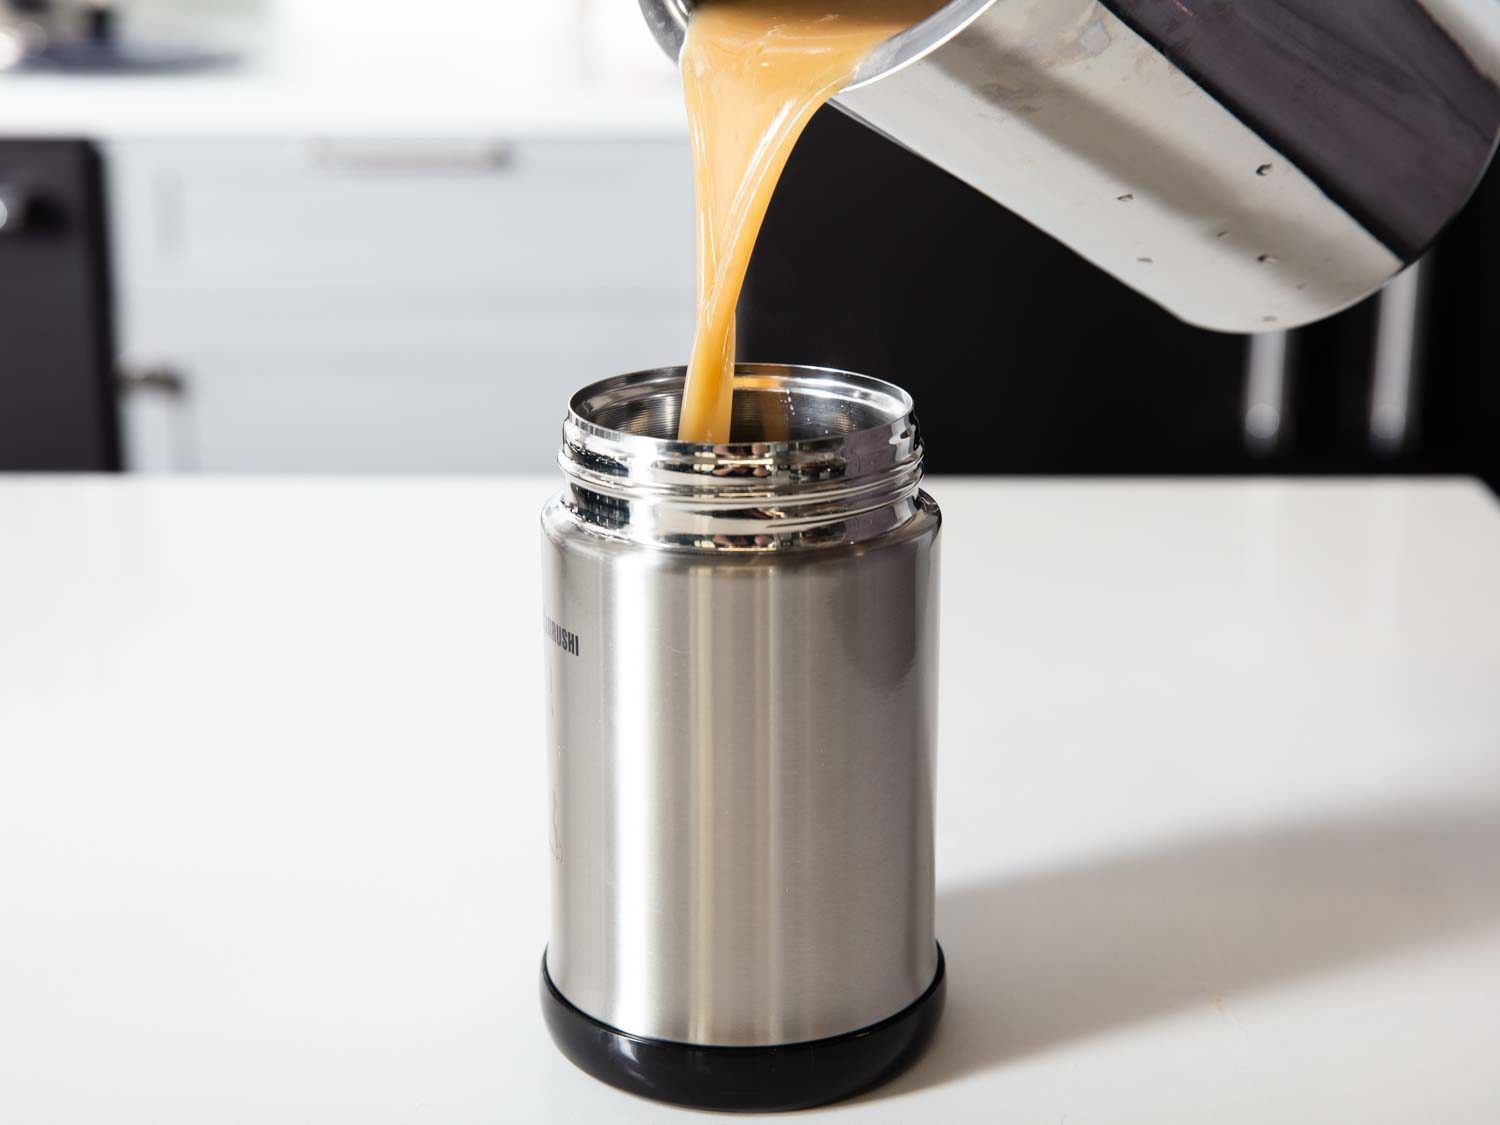 Pouring gravy into an insulated thermos